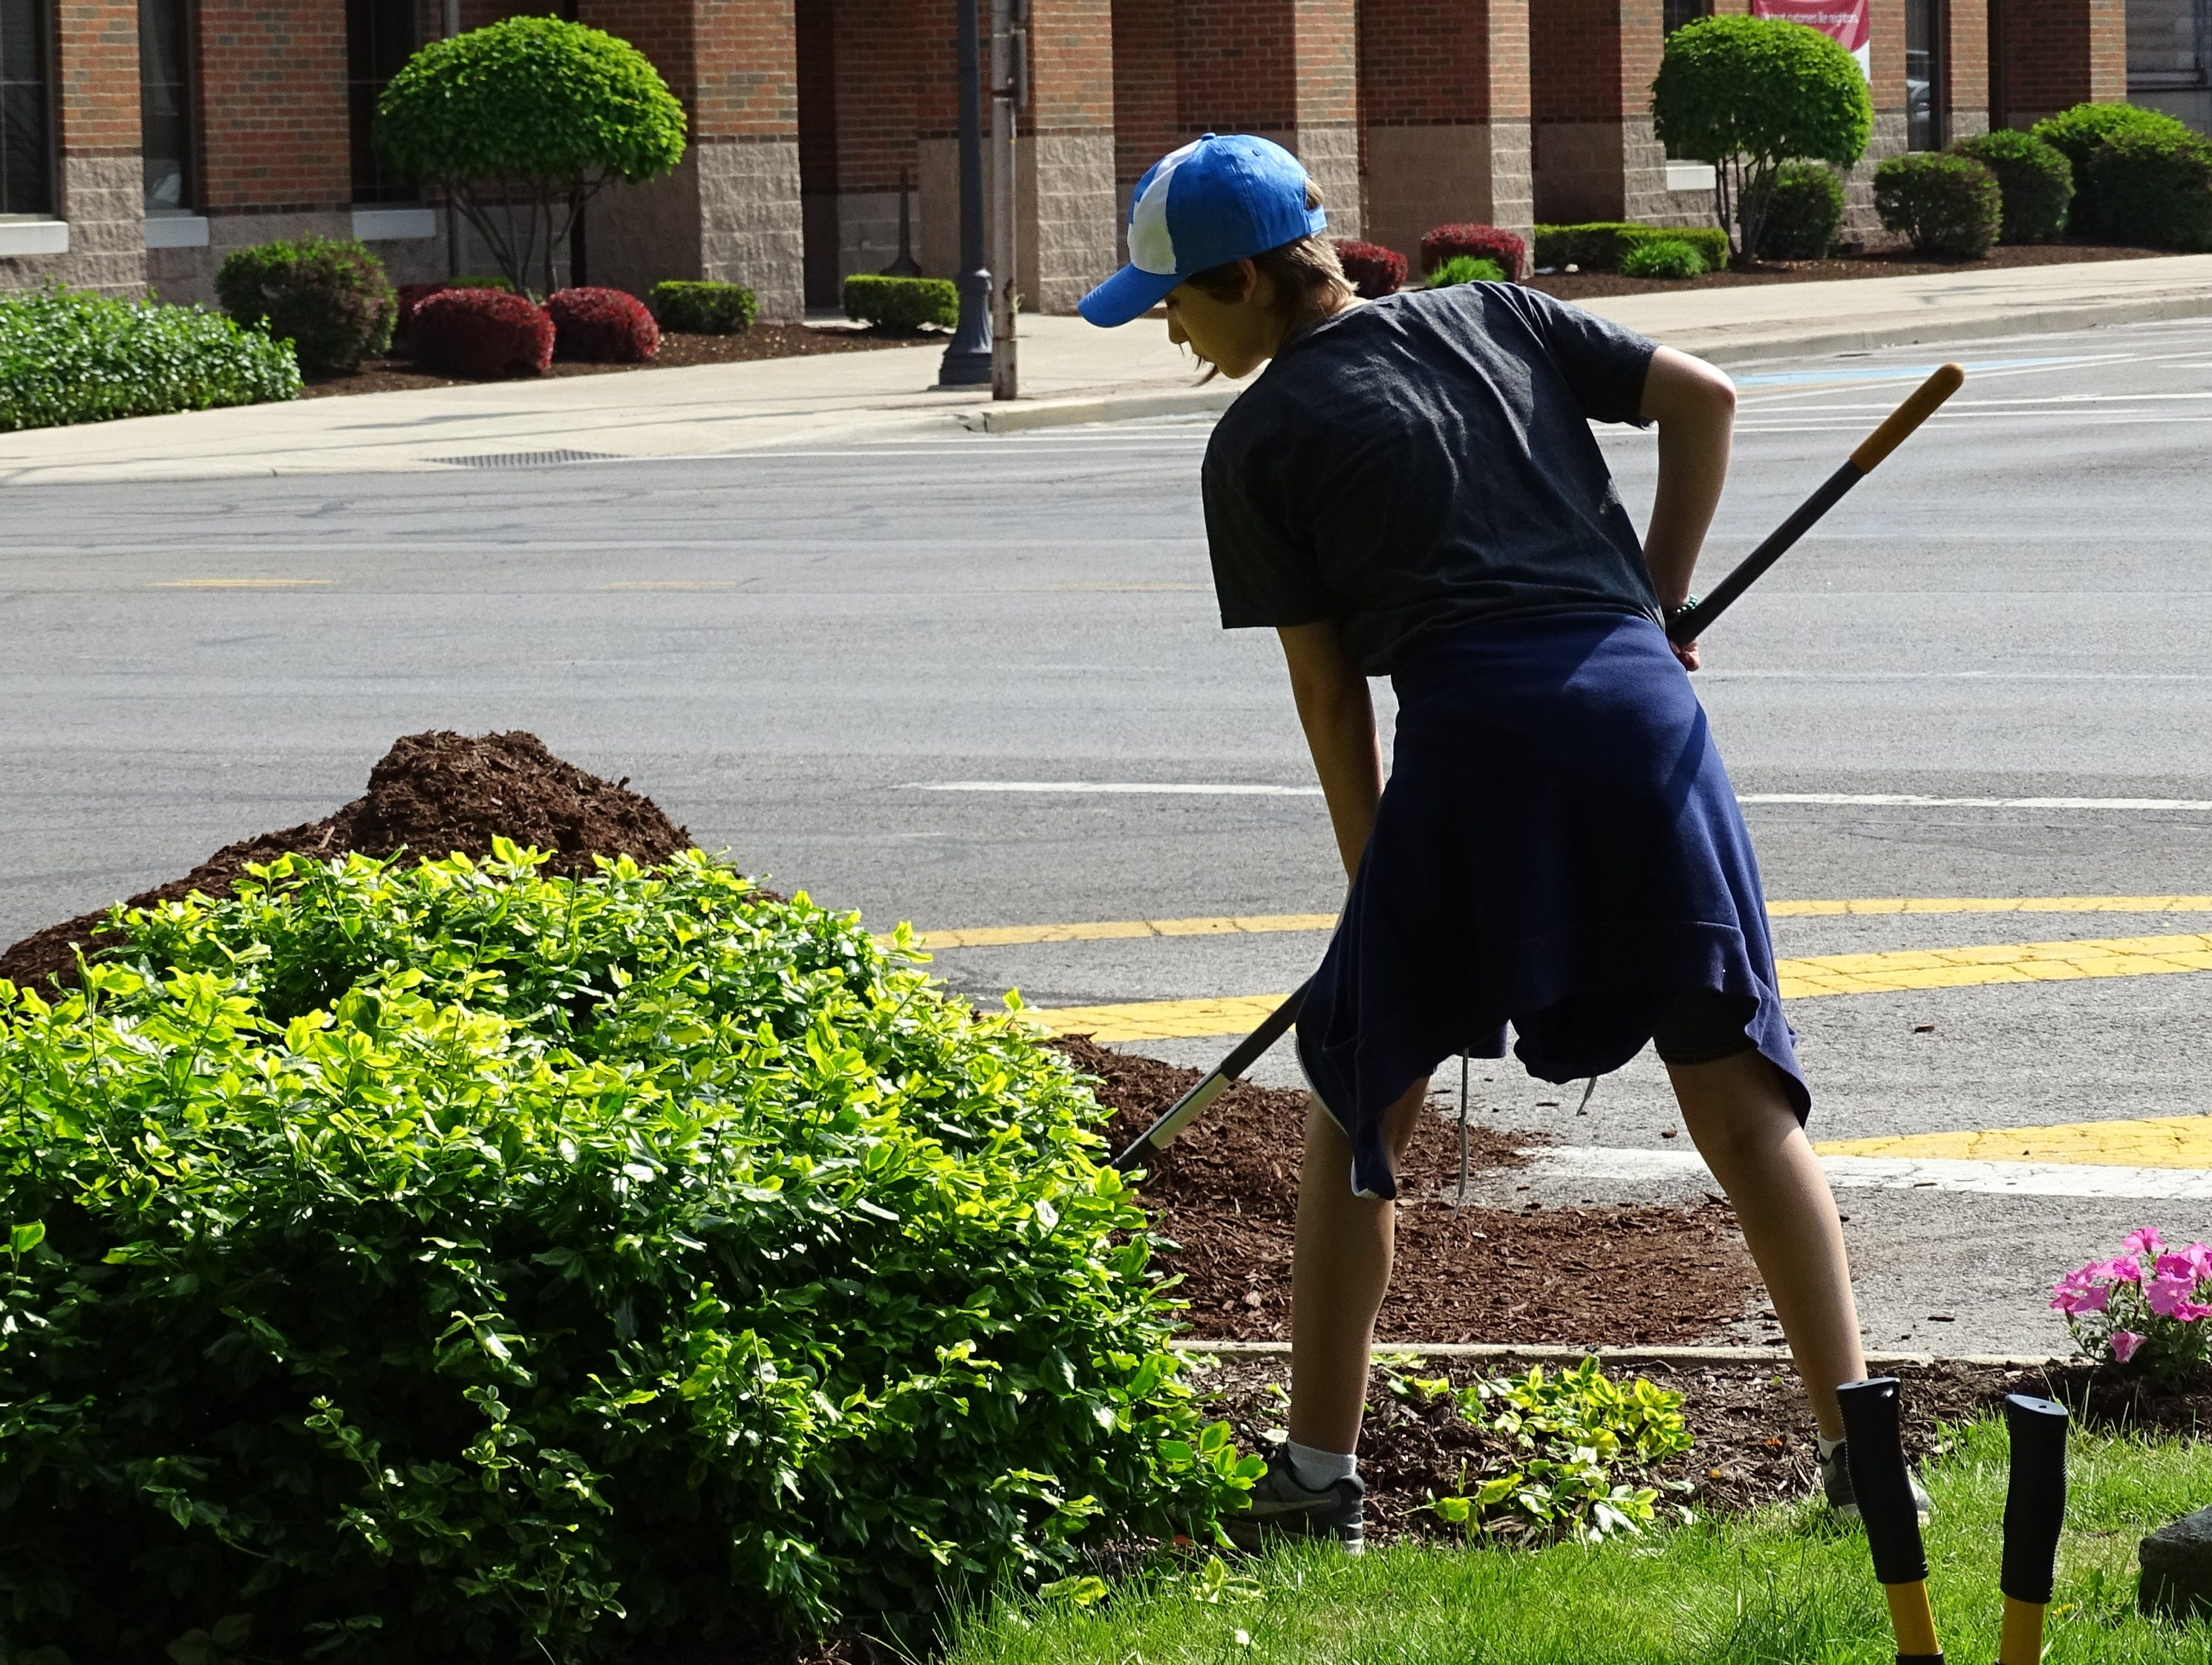 Parker Boggs, a Bucyrus Middle School seventh-grader, rakes clippings at Washington Square in downtown Bucyrus on Thursday morning.